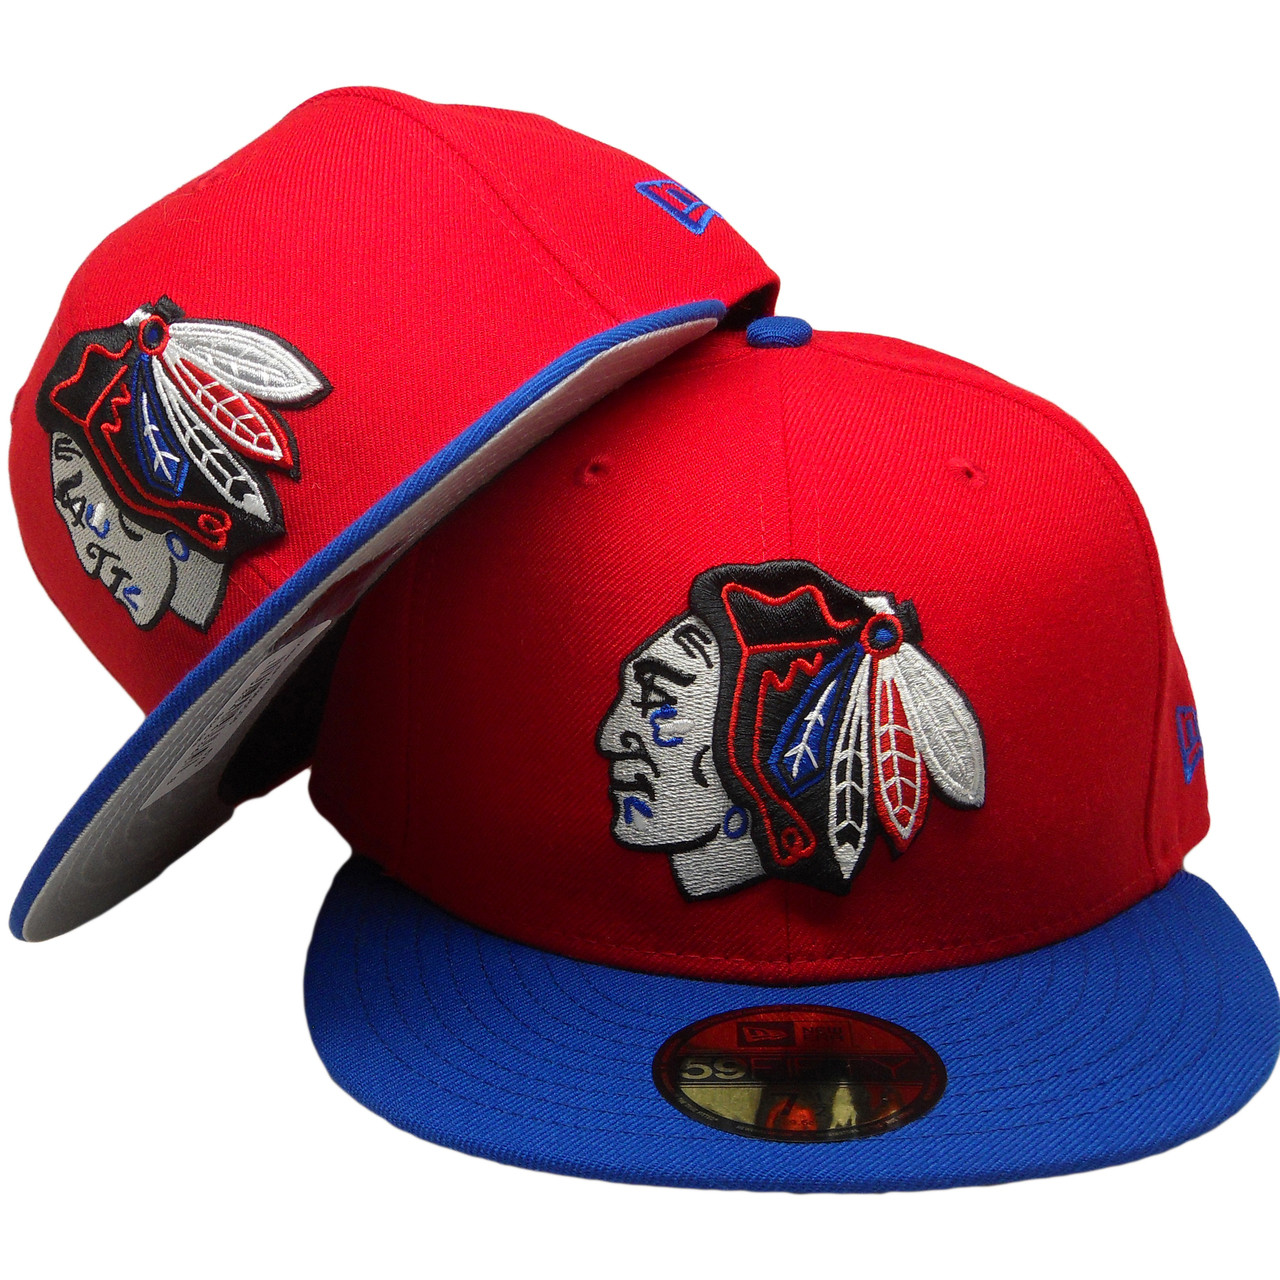 a7fea059 Chicago Blackhawks New Era Custom 59Fifty Fitted Hat - Red, Royal, Black -  ECapsUnlimited.com